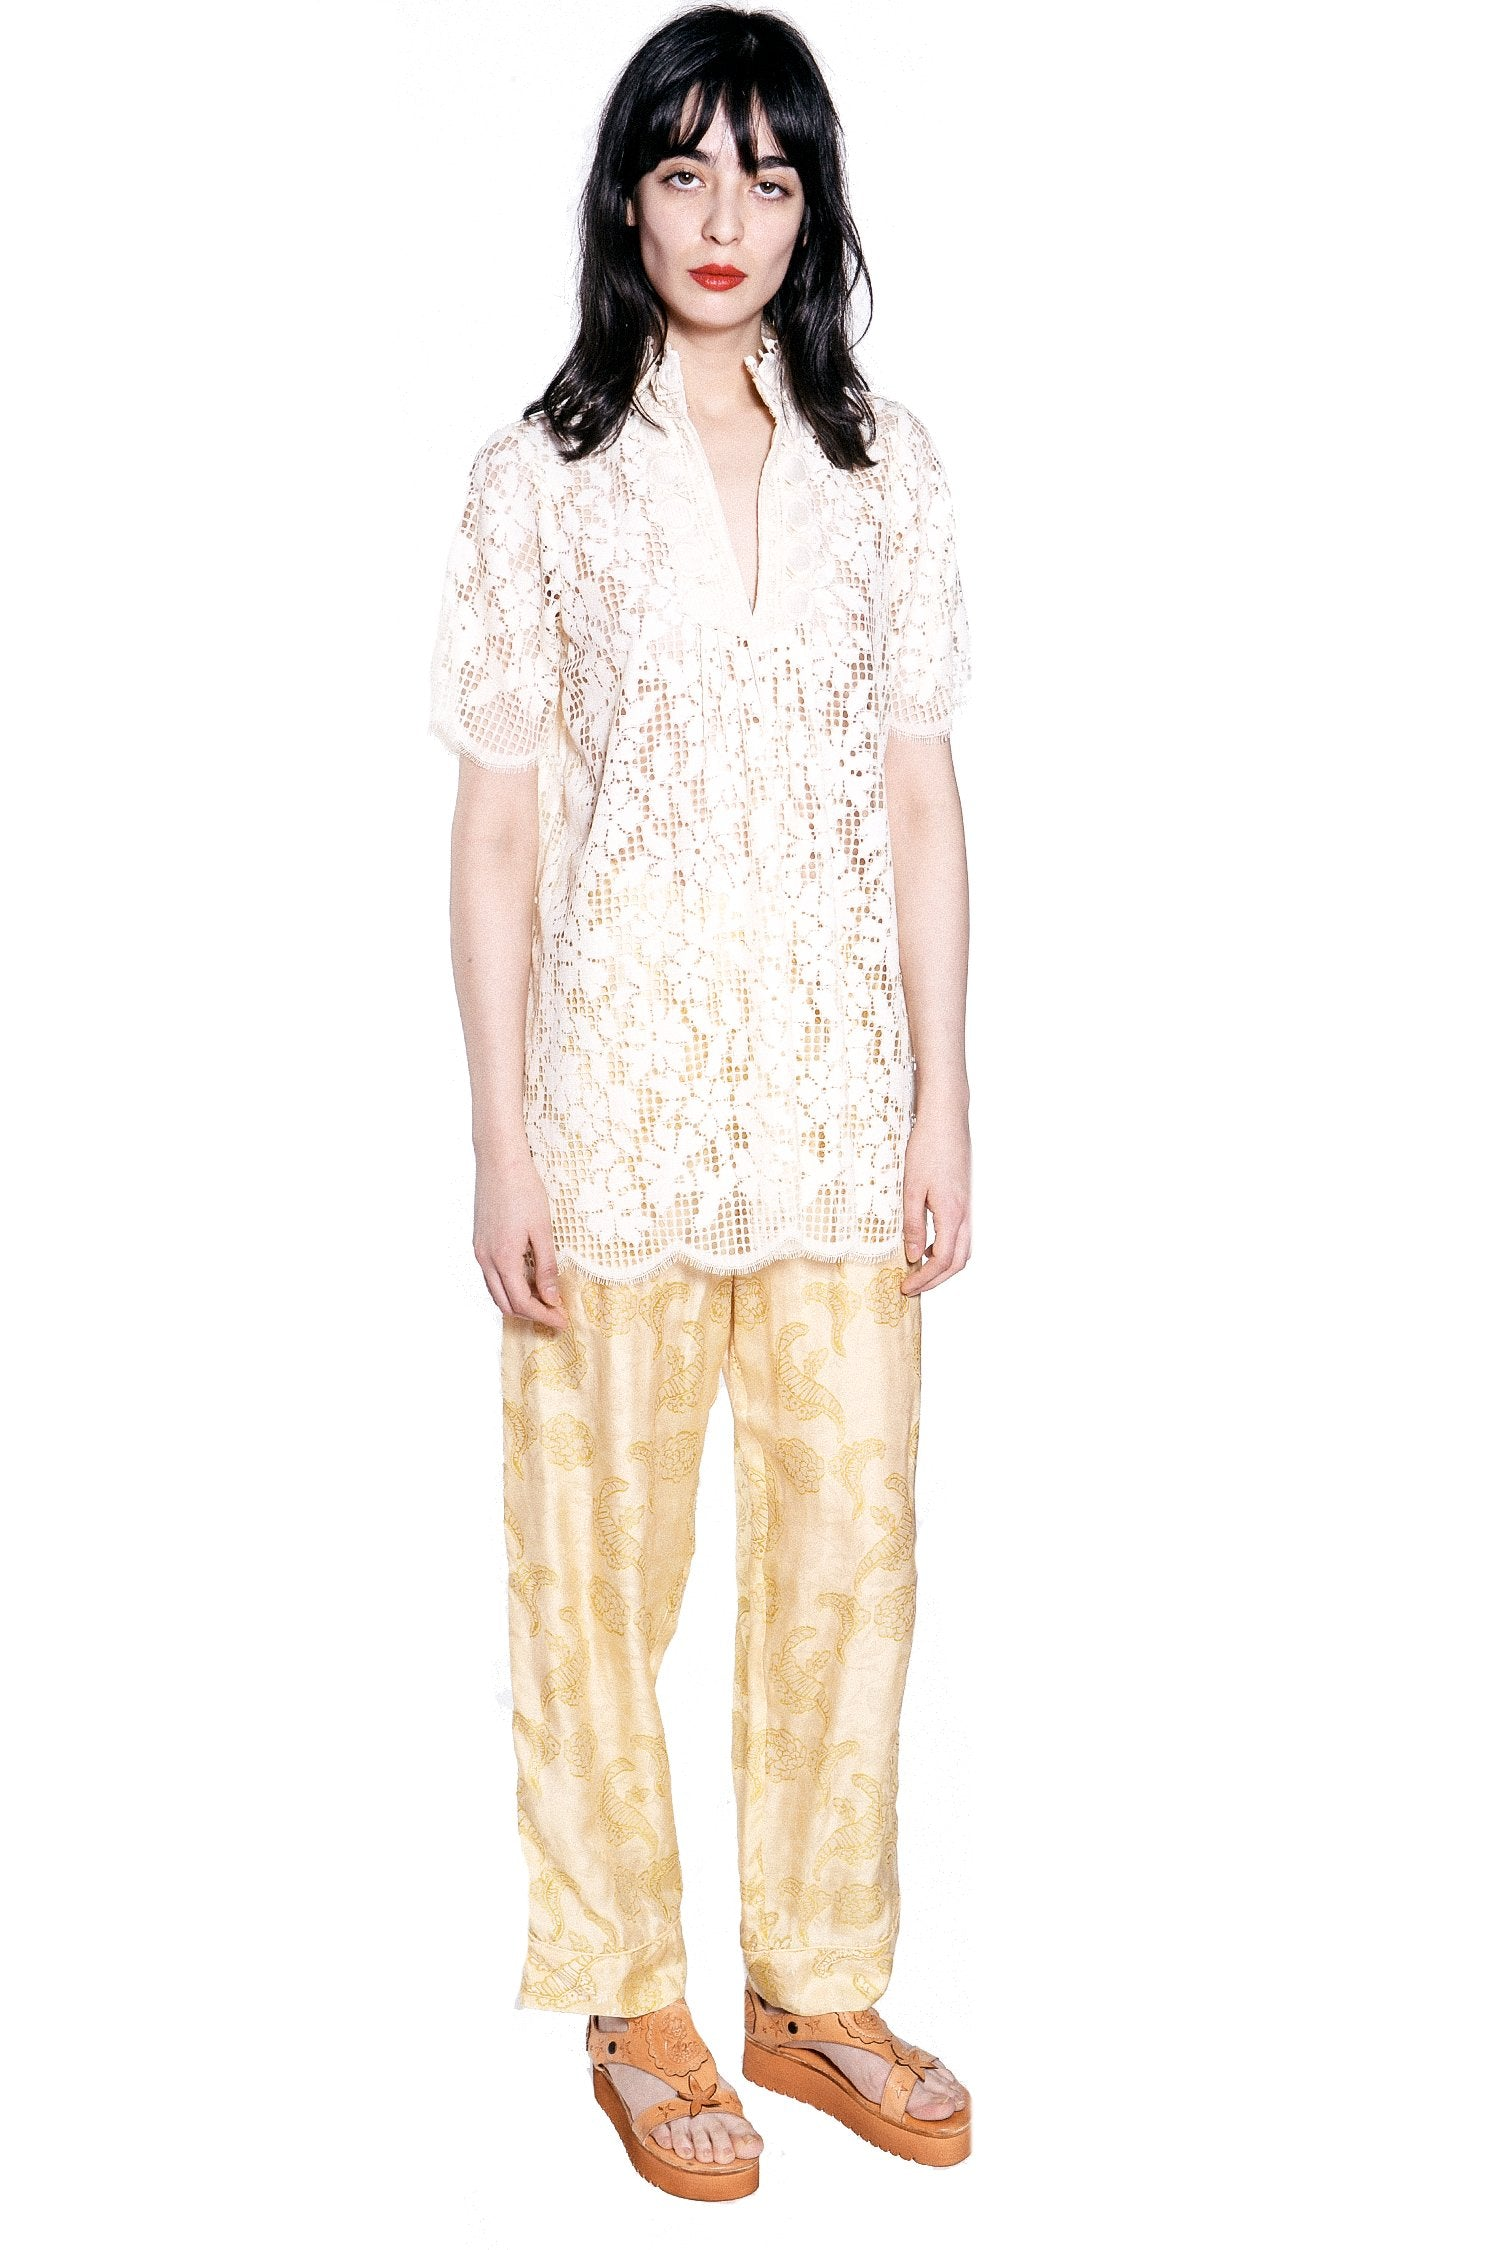 Climbing Orchids Lace Short-Sleeve Top - Anna Sui